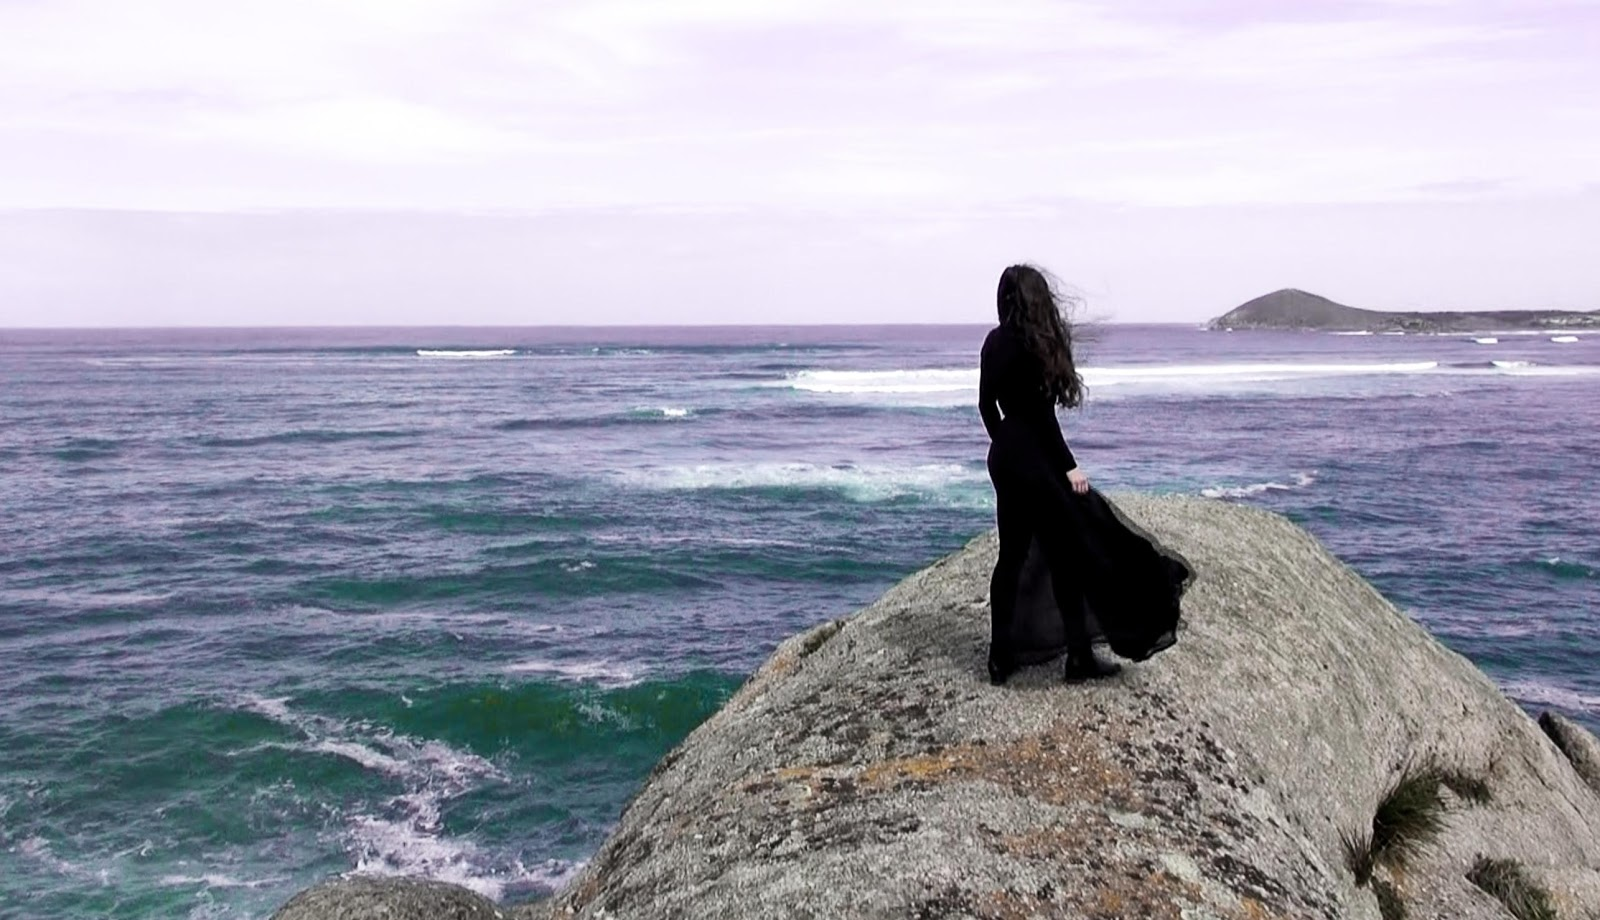 SUPERNAL - Elise Bonato (SA)siren/saudade (2016), single-channel digital video still.Courtesy of the artist.+ARTIST TALK Saturday May 7, 11am at SawtoothThis project has been assisted by the Australian Government through the Australia Council for the Arts, its arts funding and advisory body.